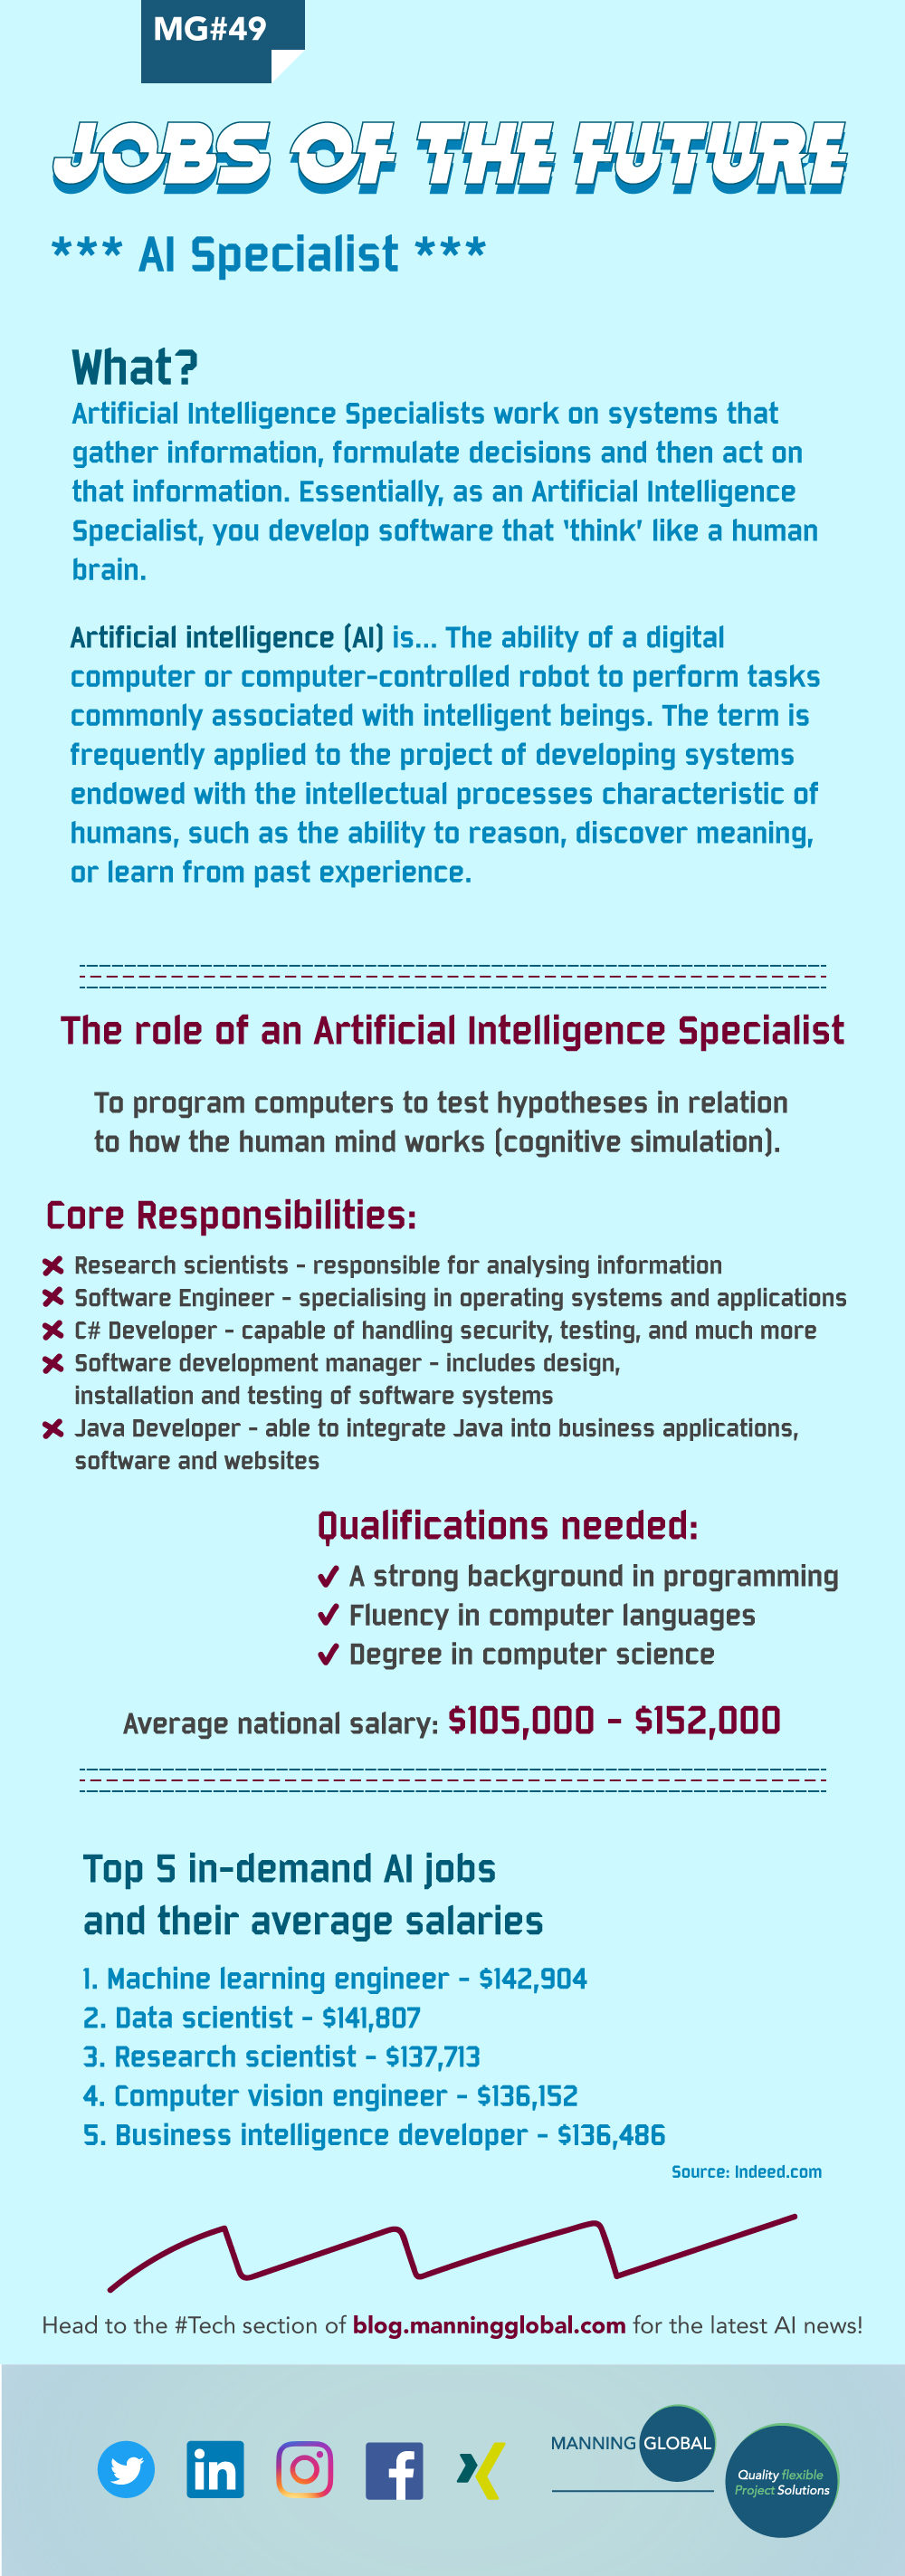 Jobs of the future: AI Specialist - Blog by Manning Global Group